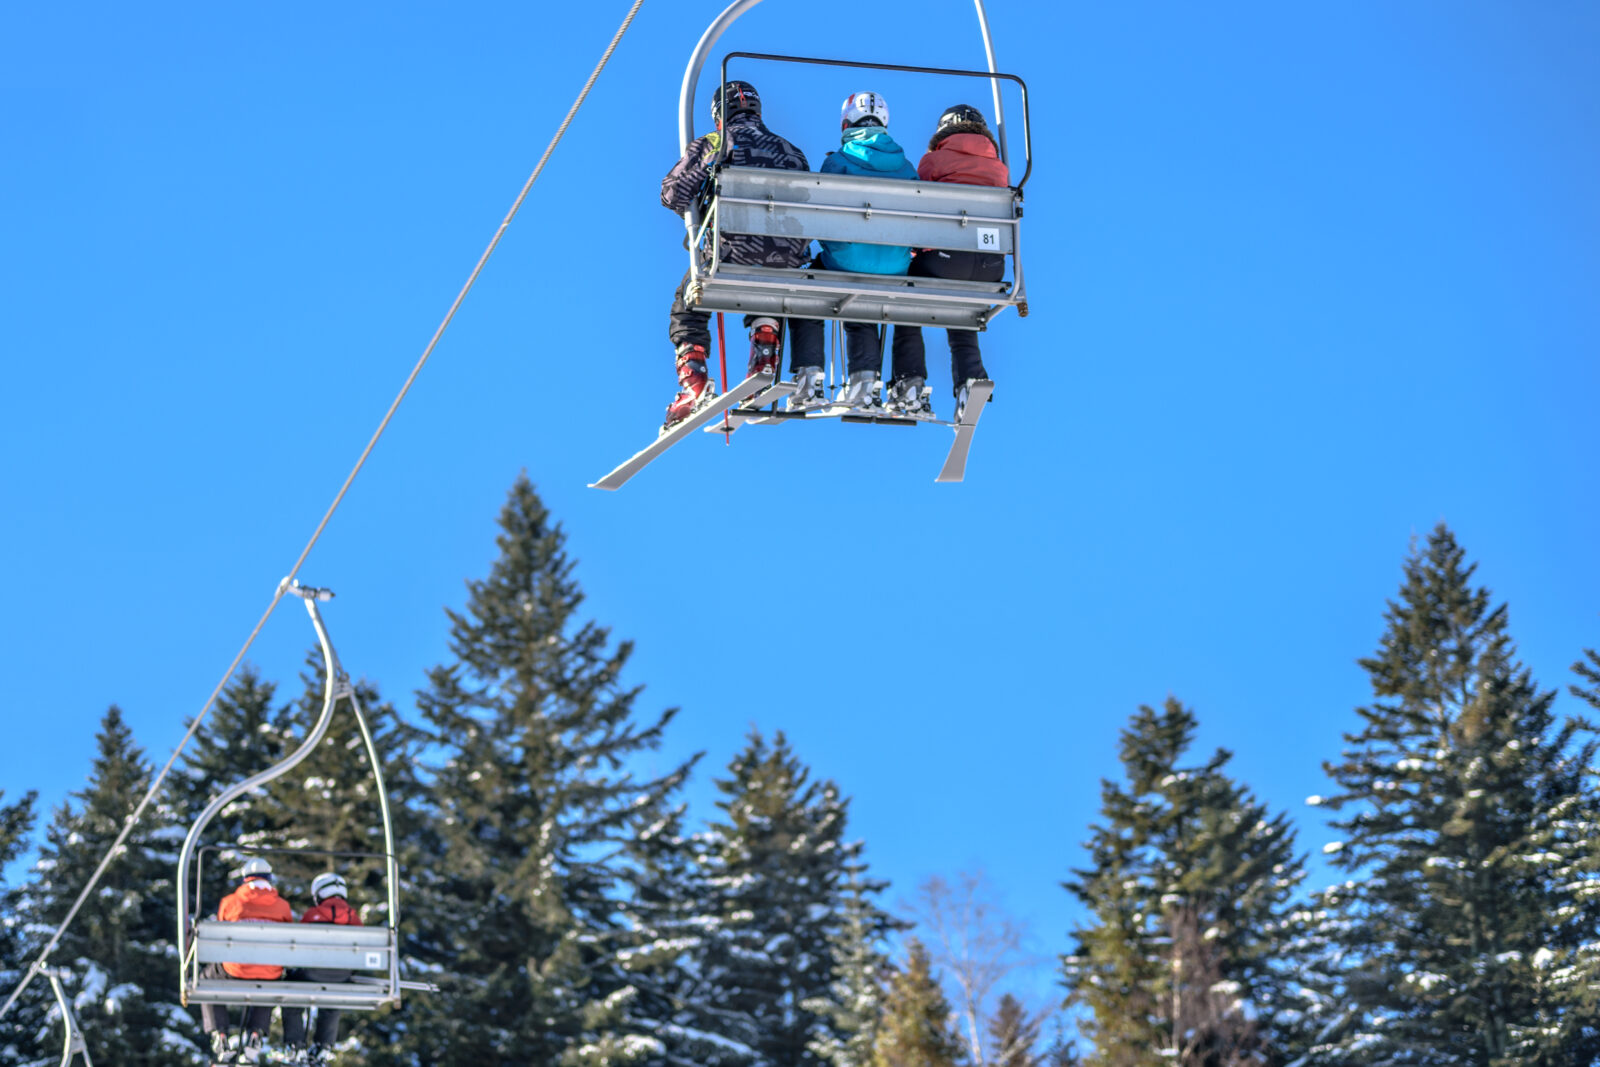 Colorado Ski Resort Not Liable for Injuries Caused by Negligence